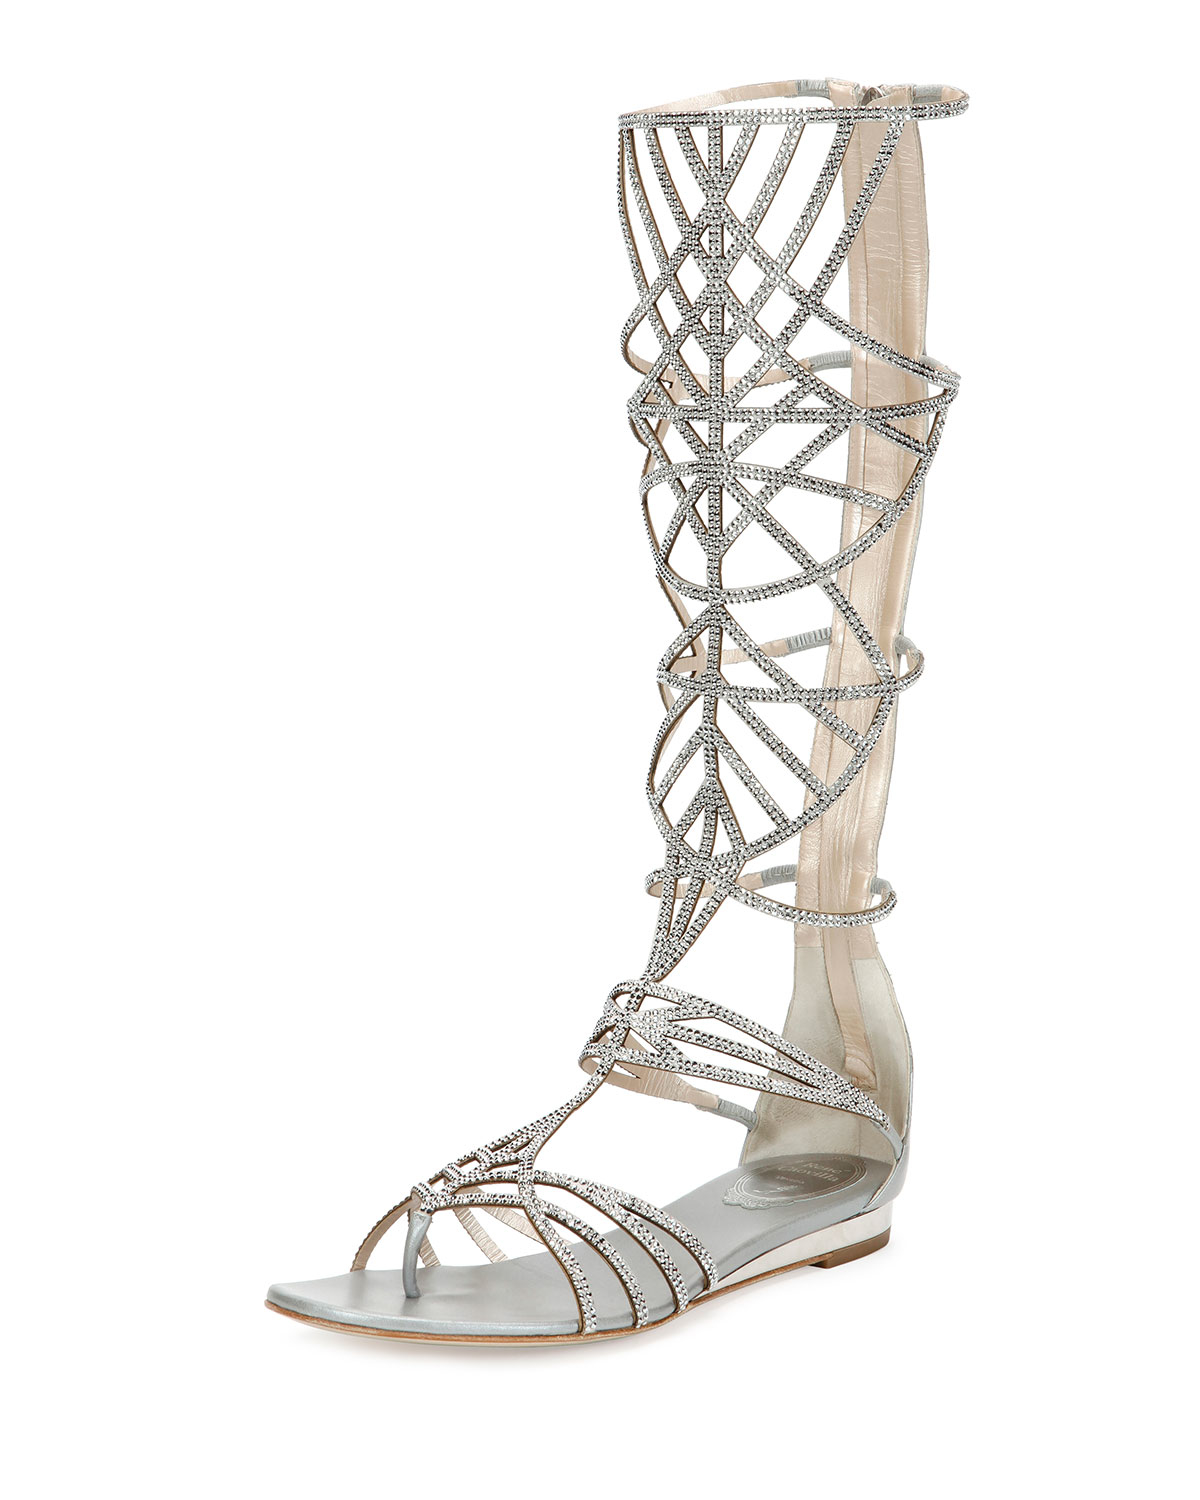 5a1975fa06d833 Lyst - Rene Caovilla Crystal-Embellished Gladiator Sandals in Metallic